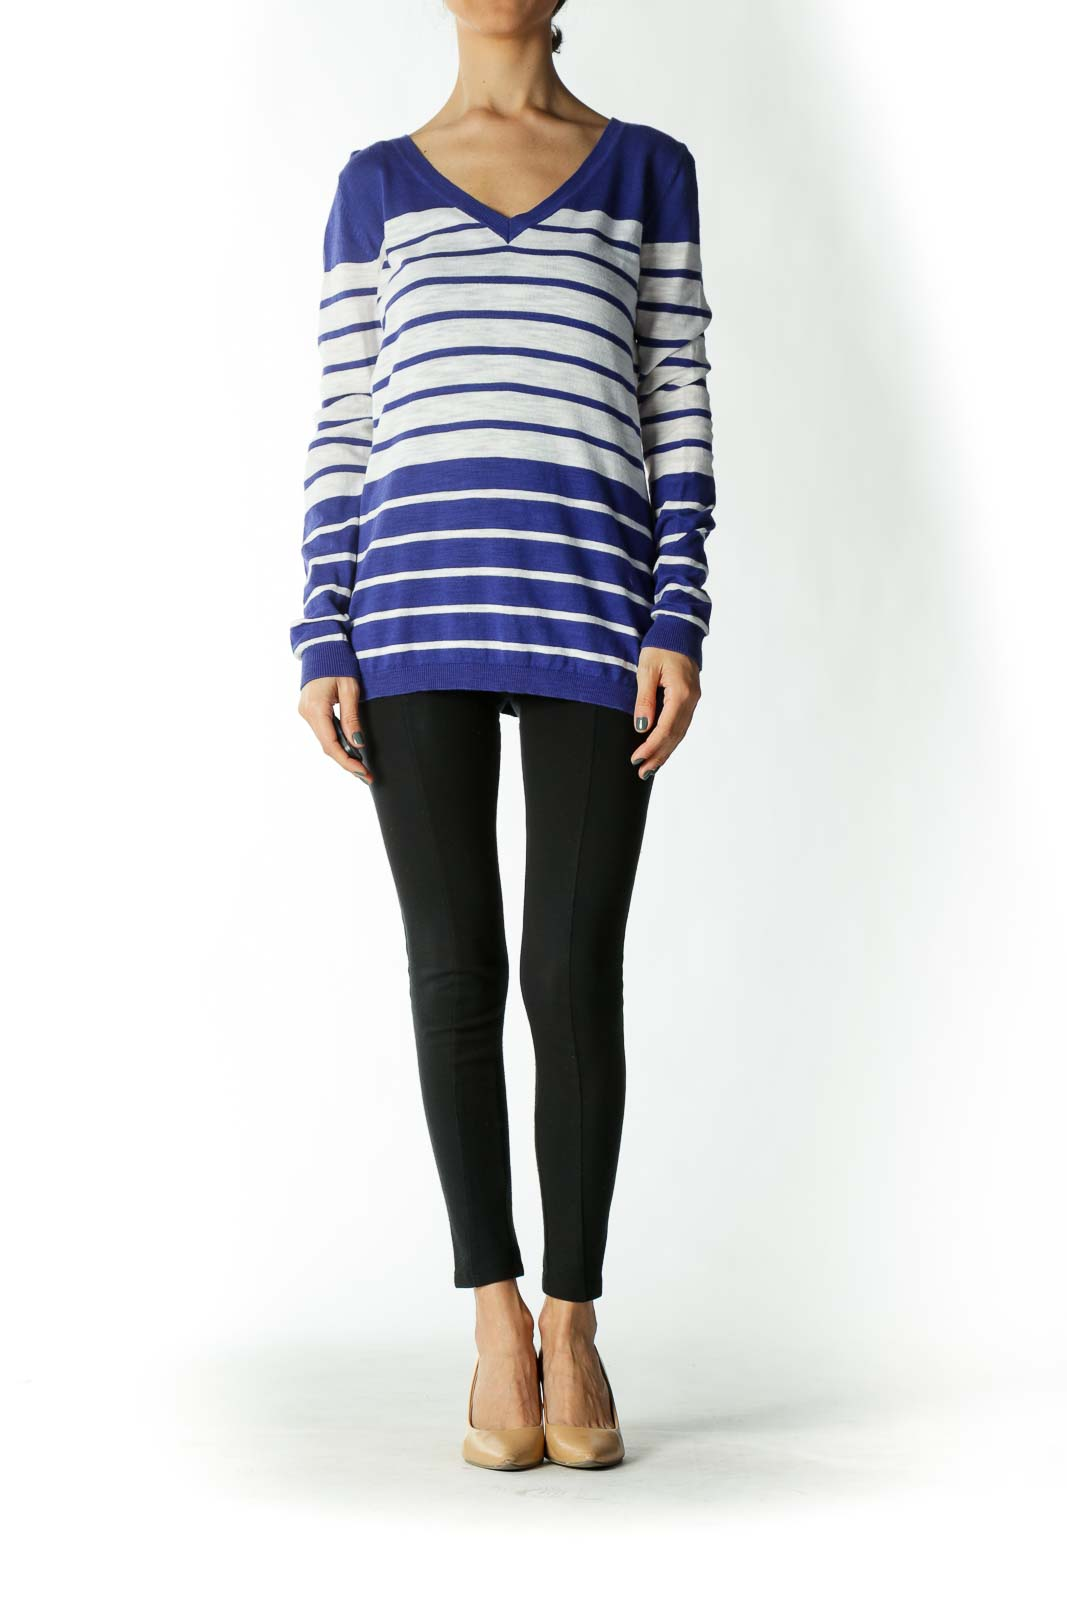 Blue and White Striped V-Neck Light-Weight Sweater